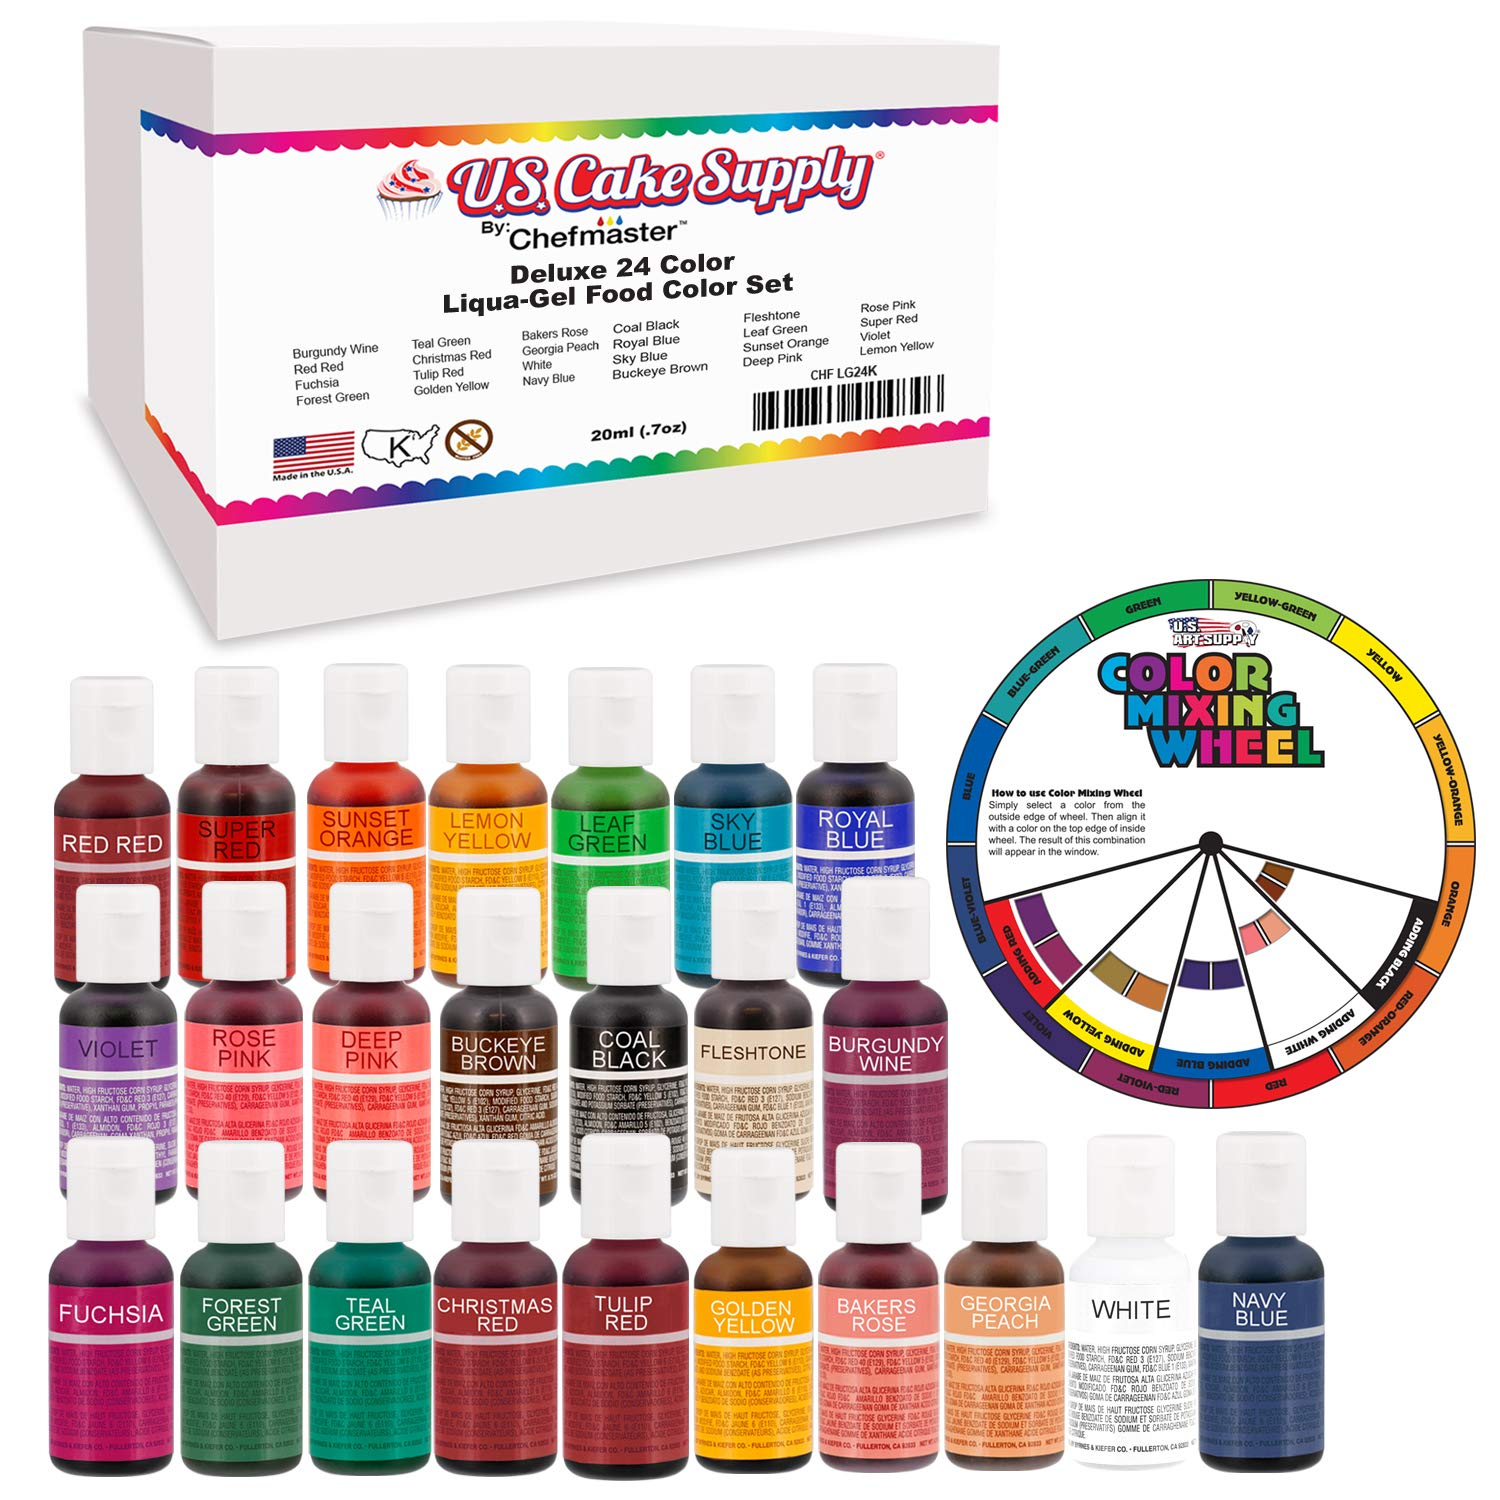 24 Color Cake Food Coloring Liqua-Gel Decorating Baking Primary & Secondary Colors Deluxe Set - U.S. Cake Supply 0.75 fl. oz. (20ml) Bottles - Made in the U.S.A.